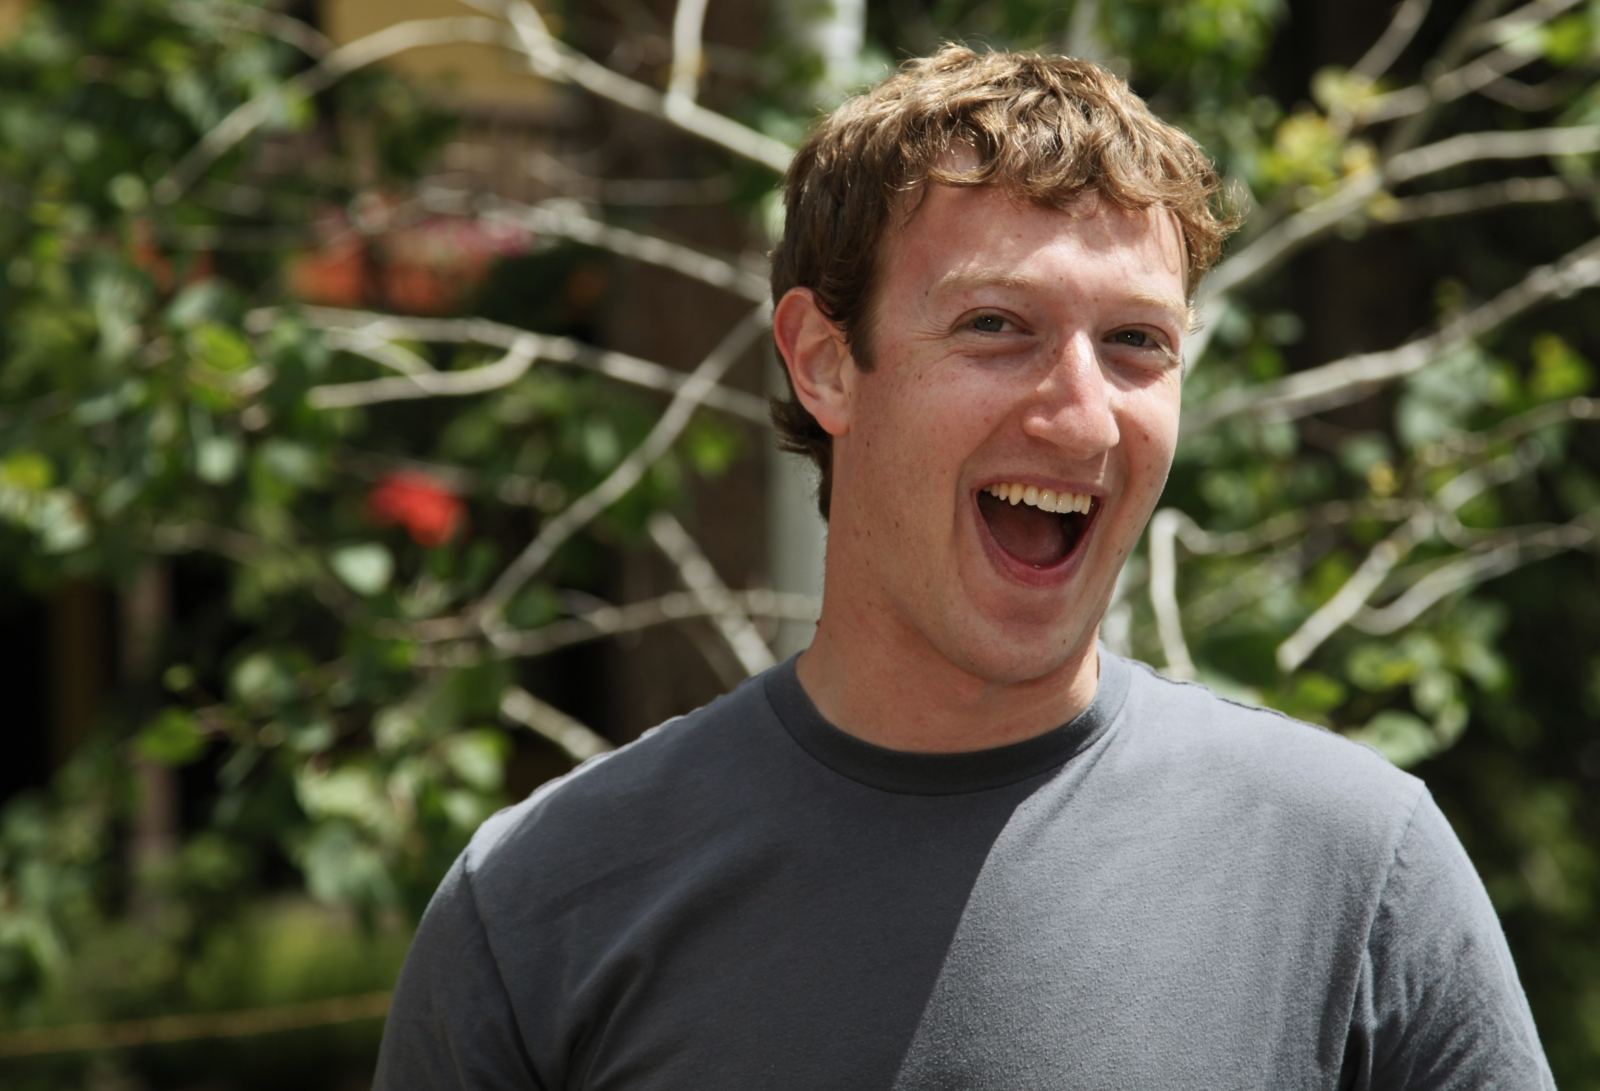 Facebook CEO Mark Zuckerberg in a grey t shirt